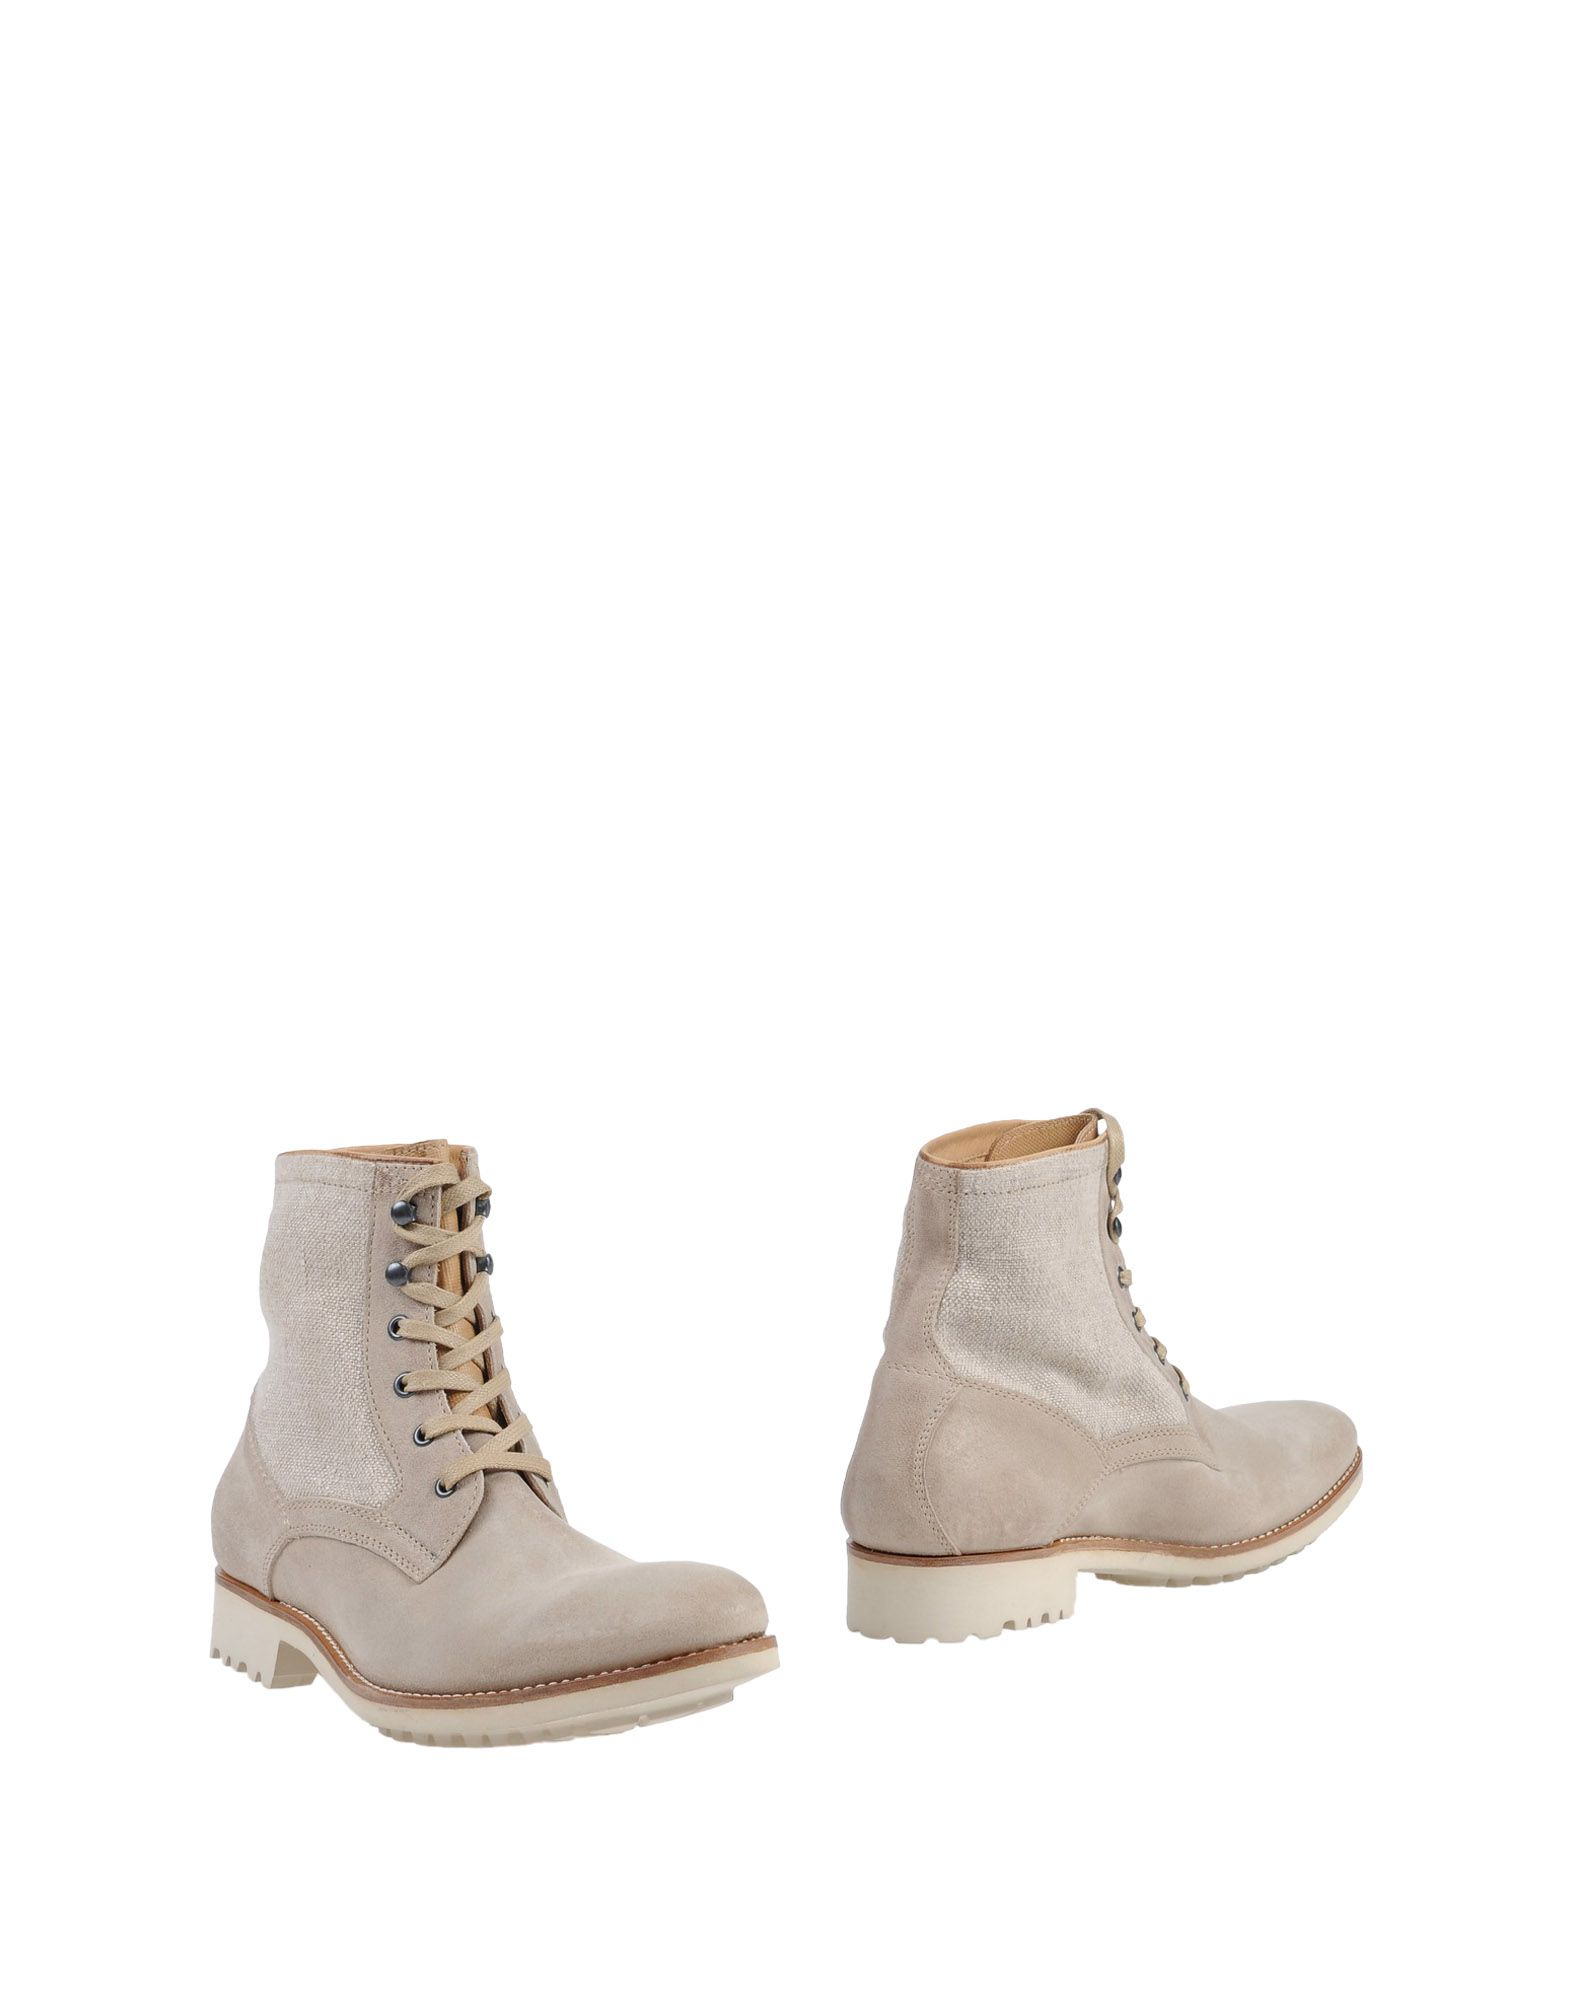 Bottine N.D.C. Made By Hand Homme - Bottines N.D.C. Made By Hand sur